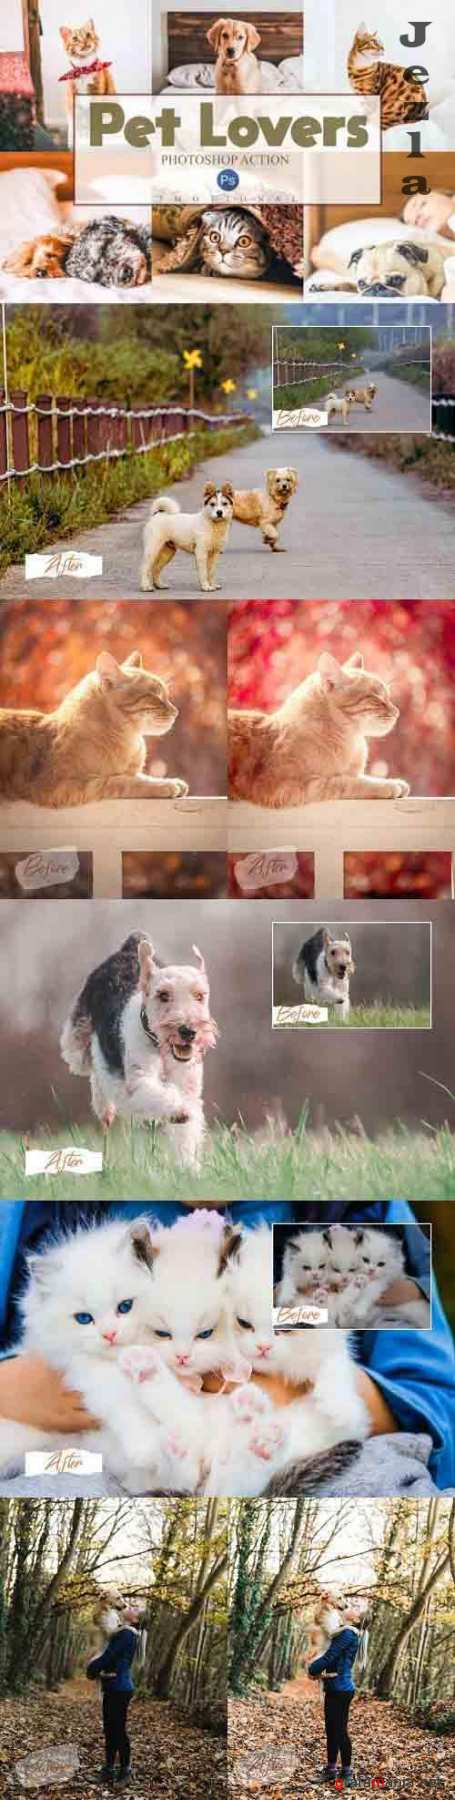 14 Pet Lovers Photoshop Actions ACR Luts